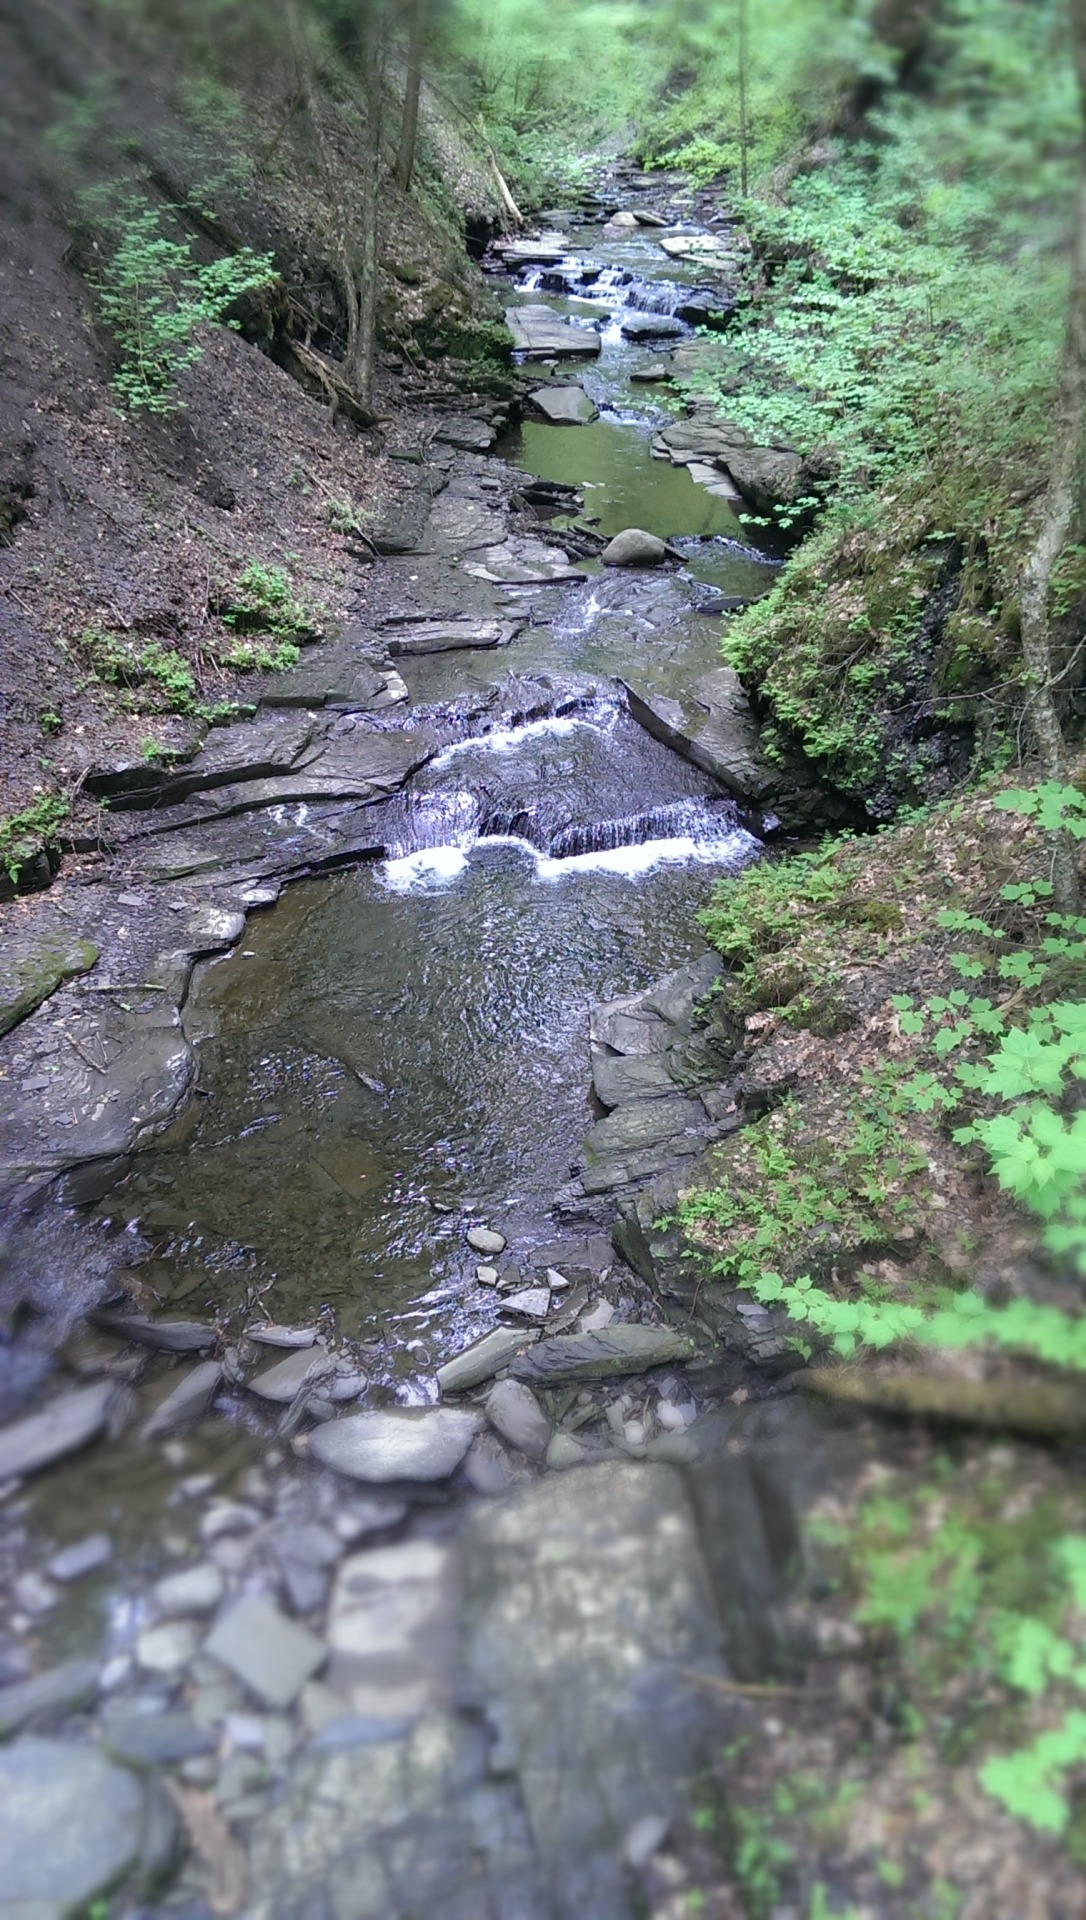 Fillmore Glen, today